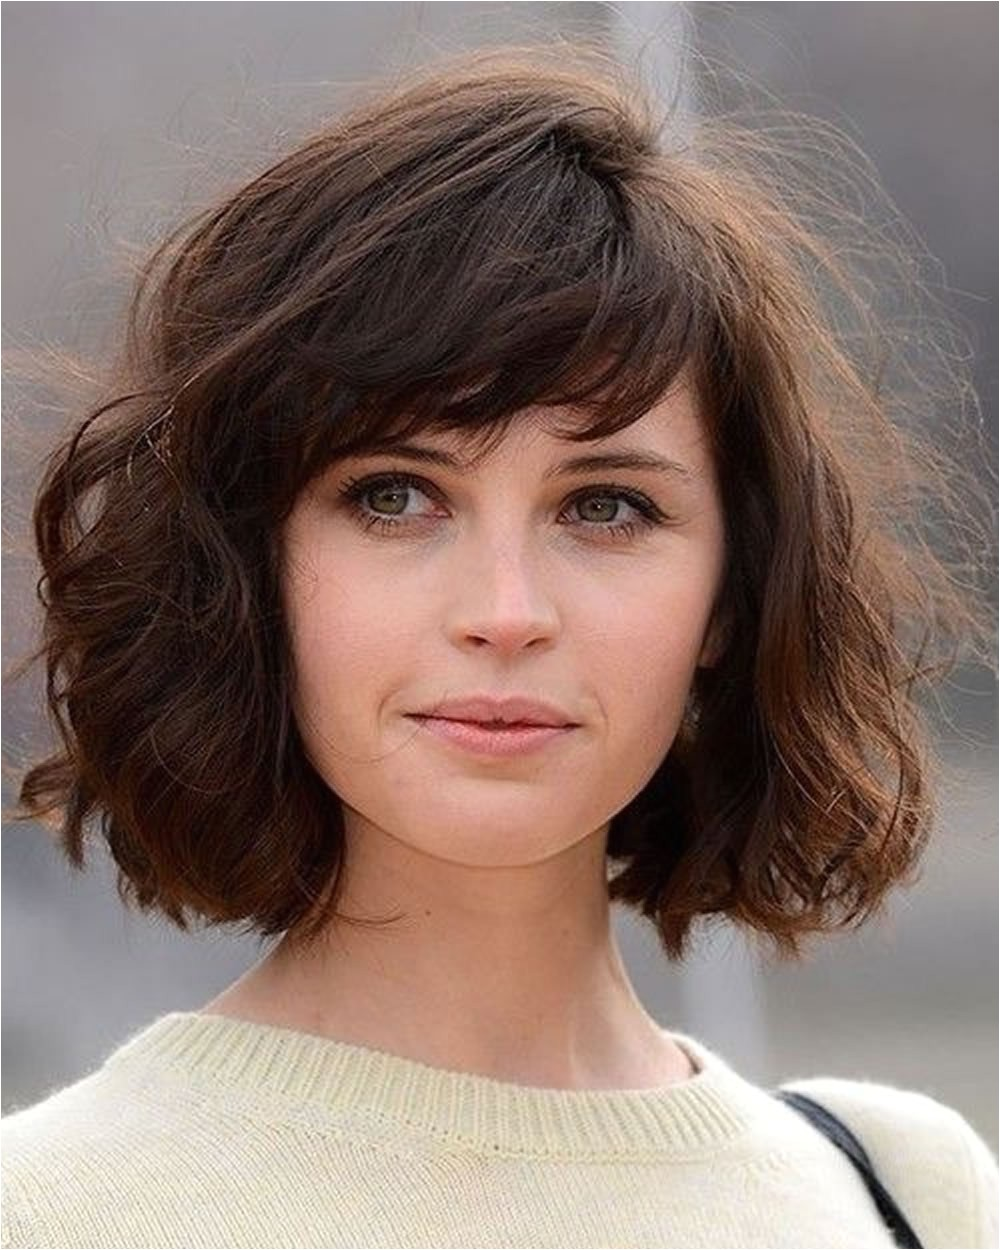 Haircuts Bobs with Bangs and Layers 30 Best Short Bob Haircuts with Bangs and Layered Bob